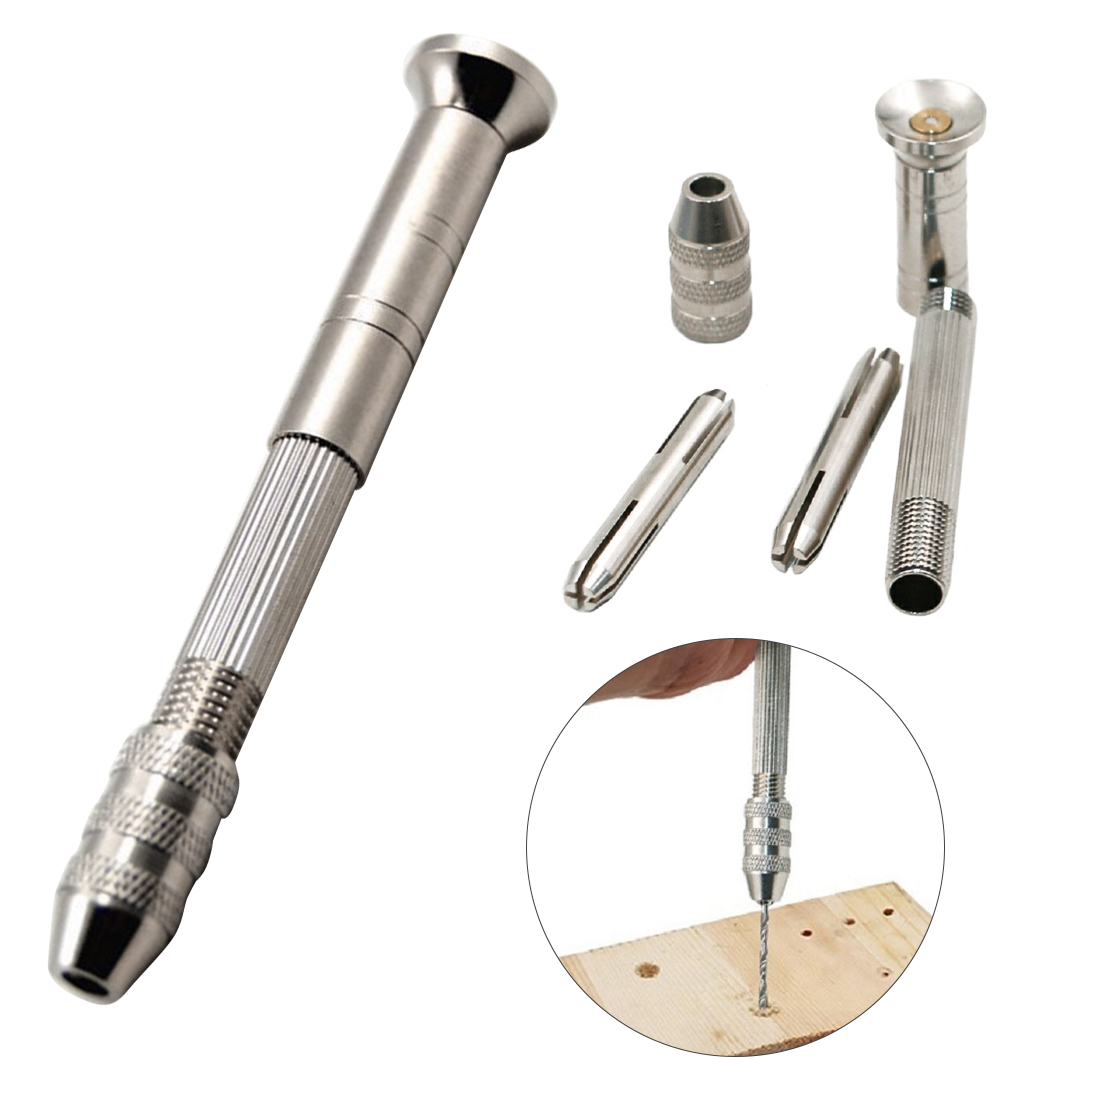 Aluminum Micro Hand Tool Woodwork 0.5-2.5mm Manual Drilling Drill Bit Driller Nuclear Carving Manual Drilling Hole Puncher